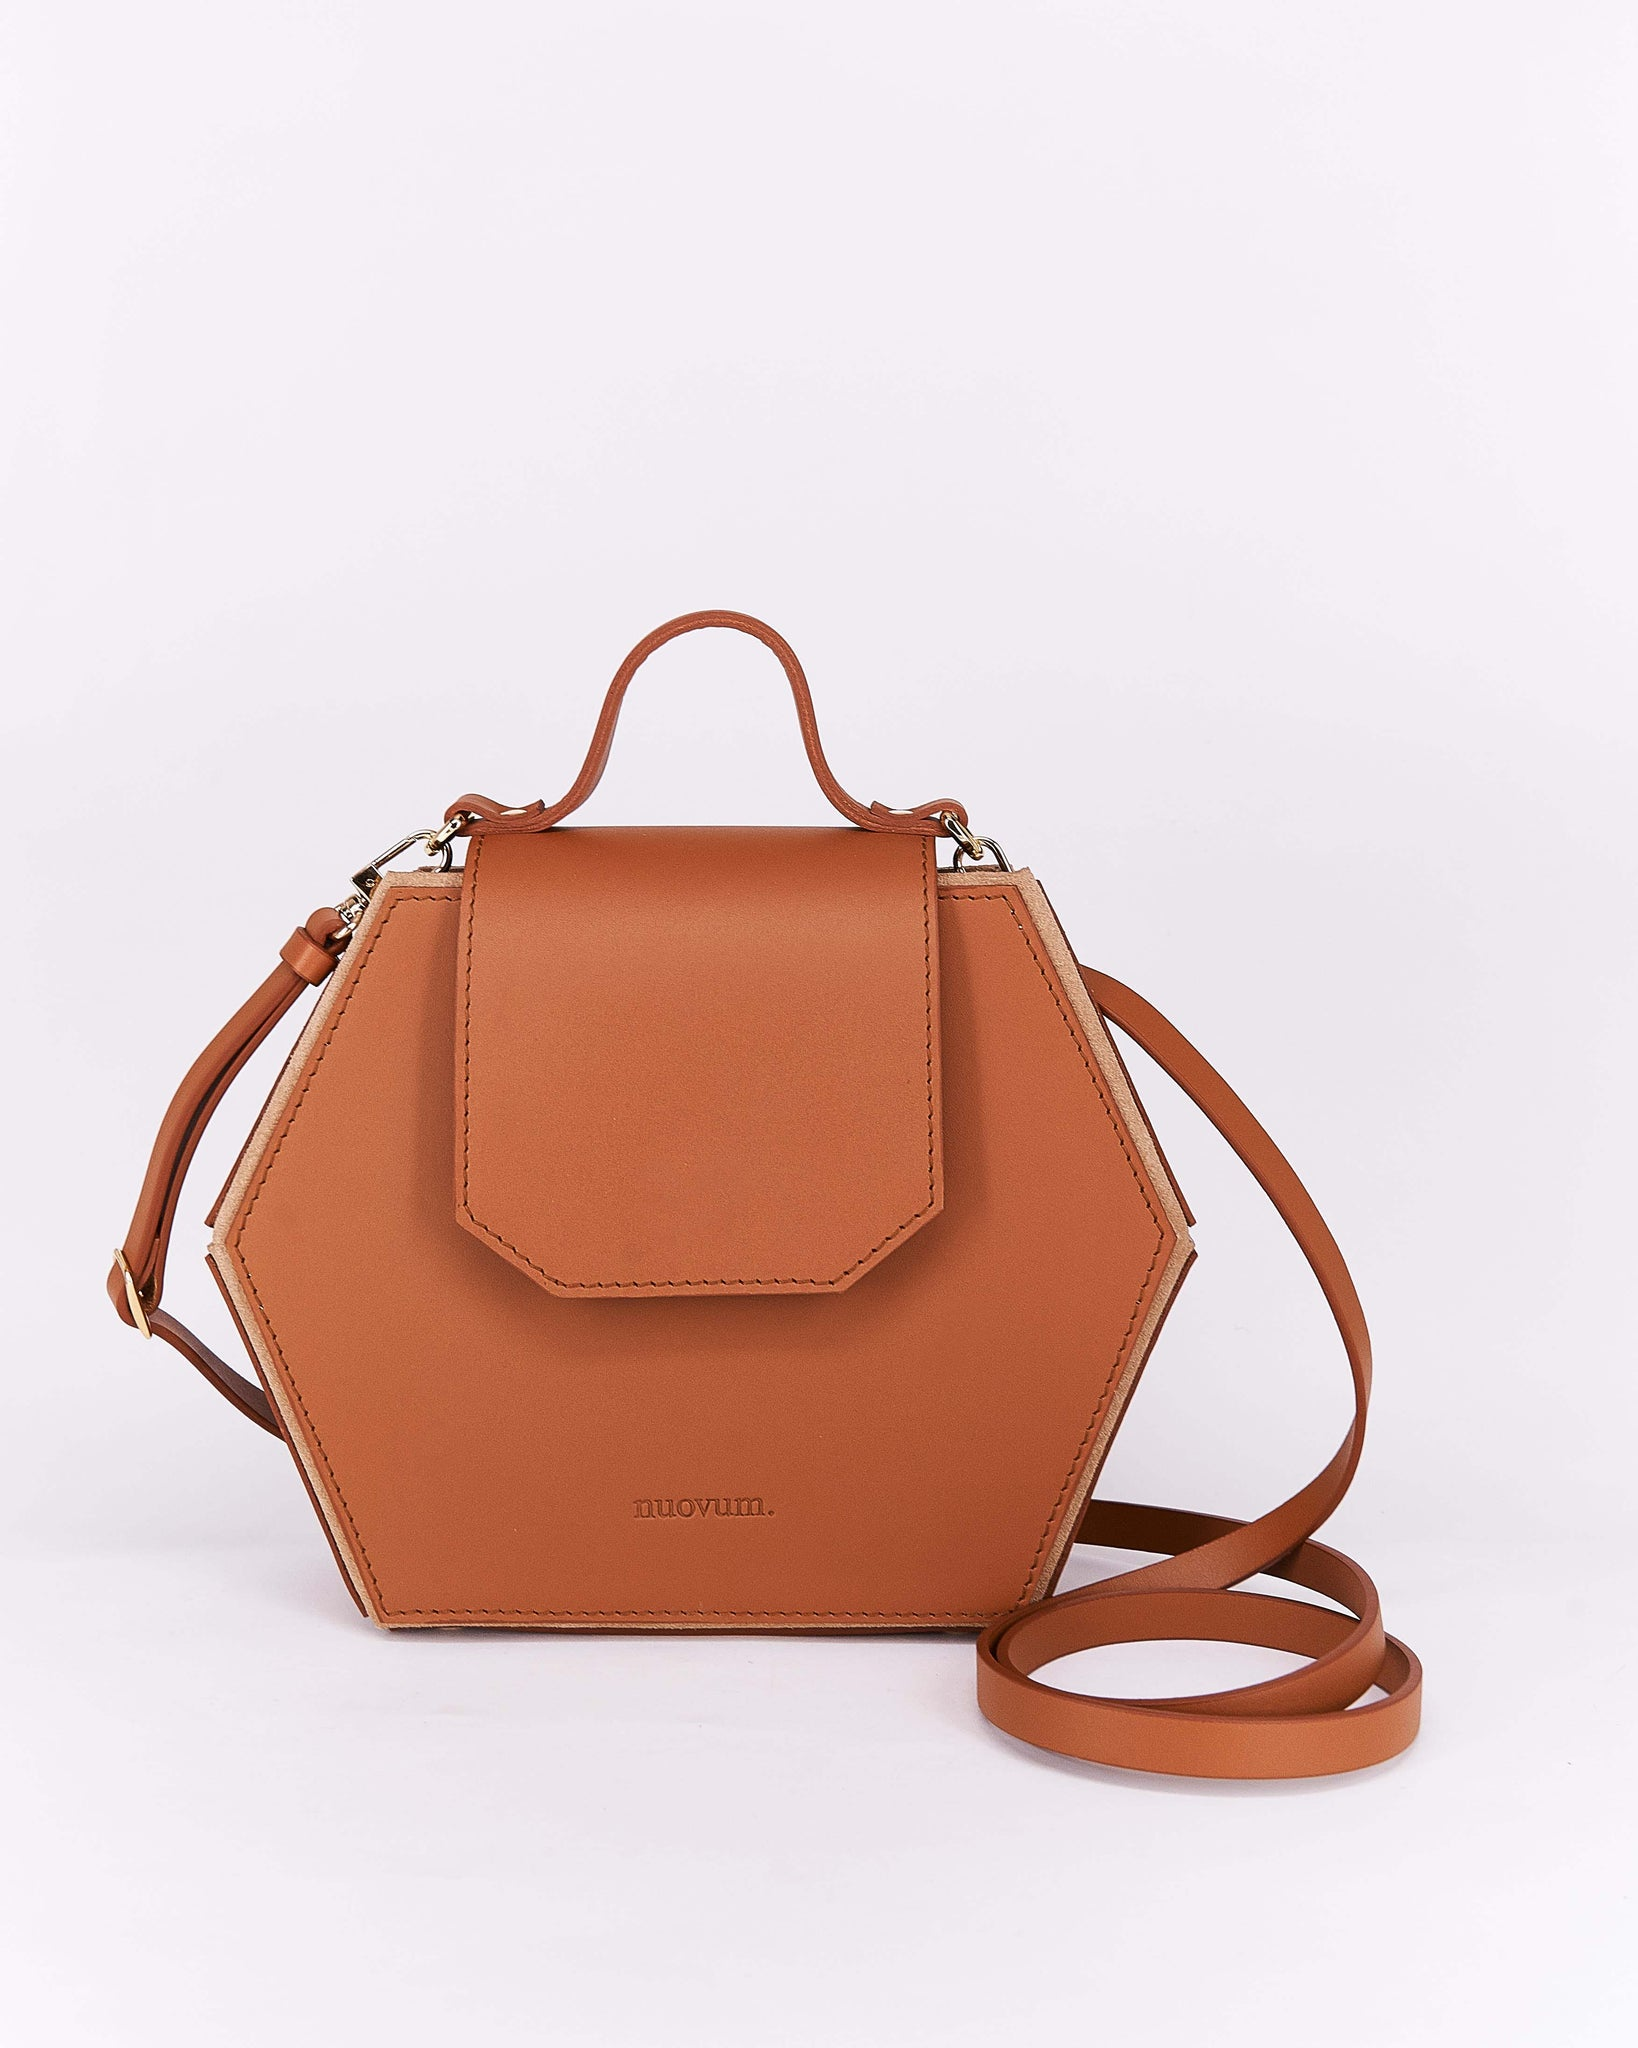 Nuo Hex Bag Brown